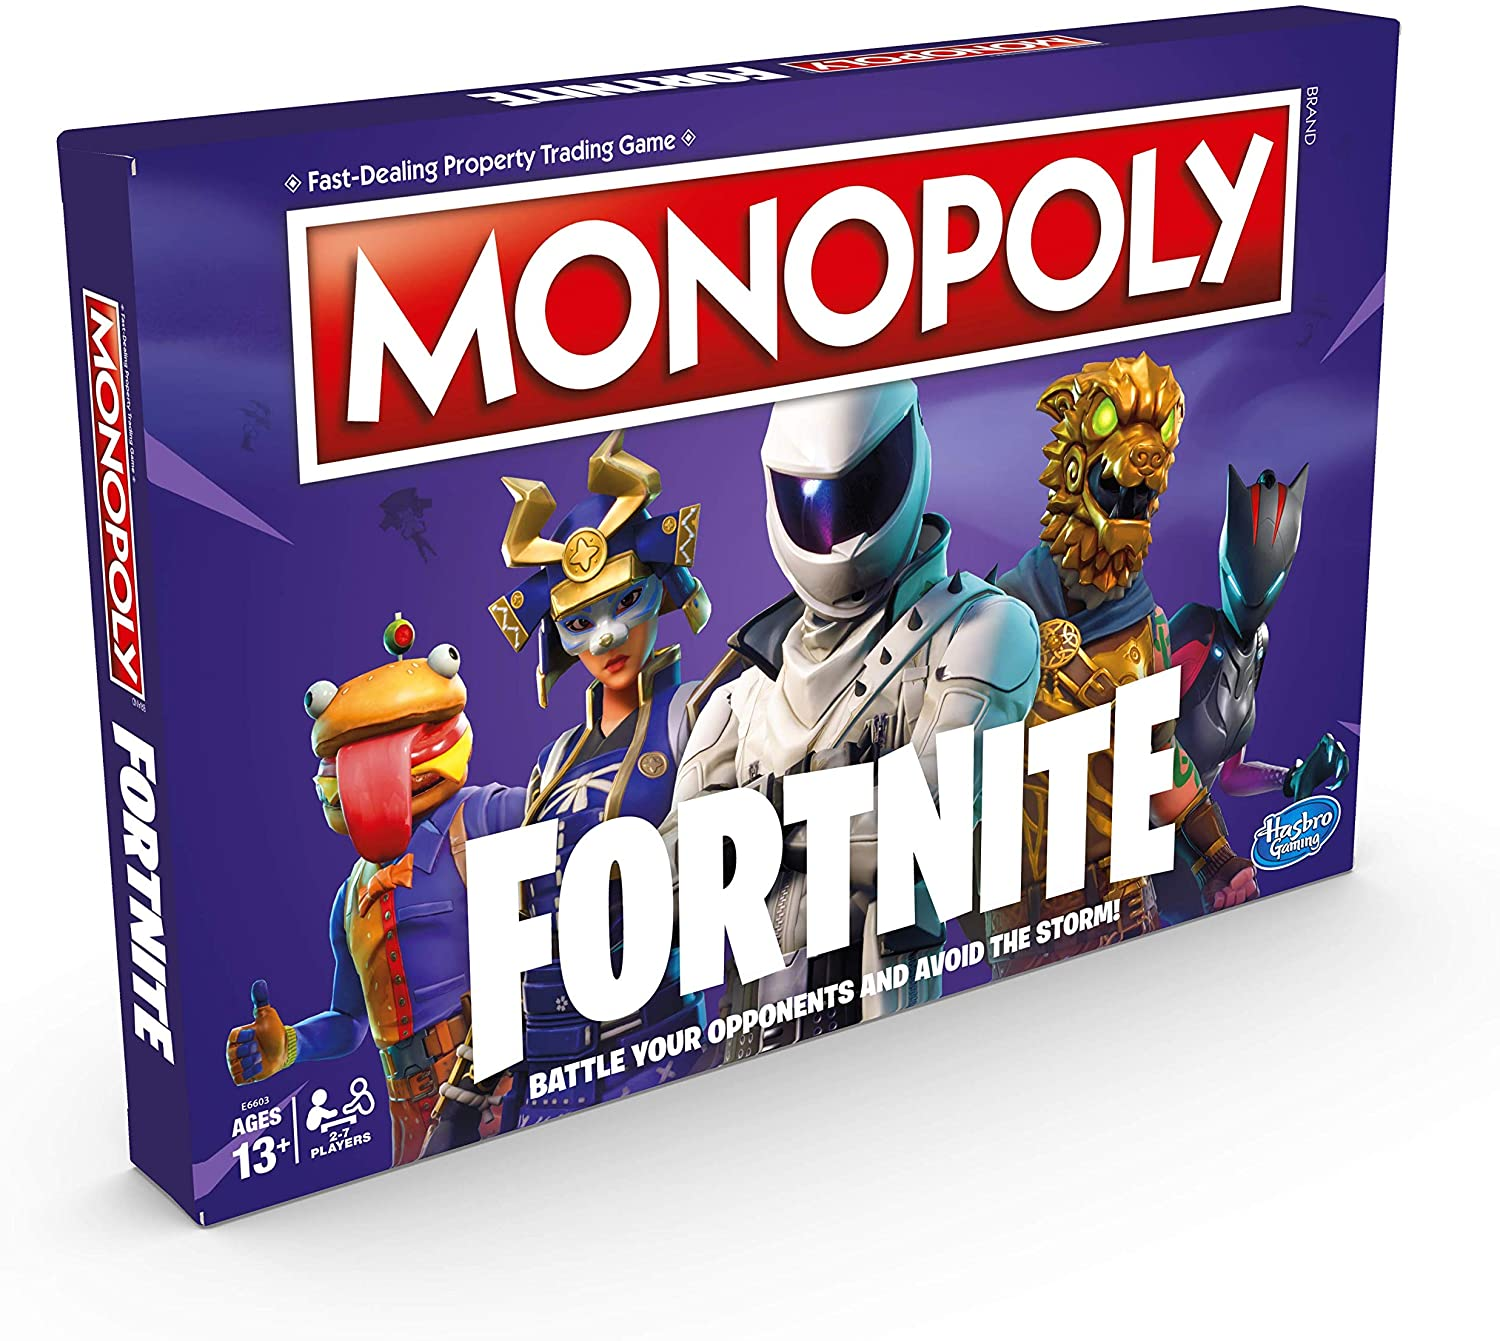 Fornite Monopoly From Hasbro Gaming *BRAND NEW*